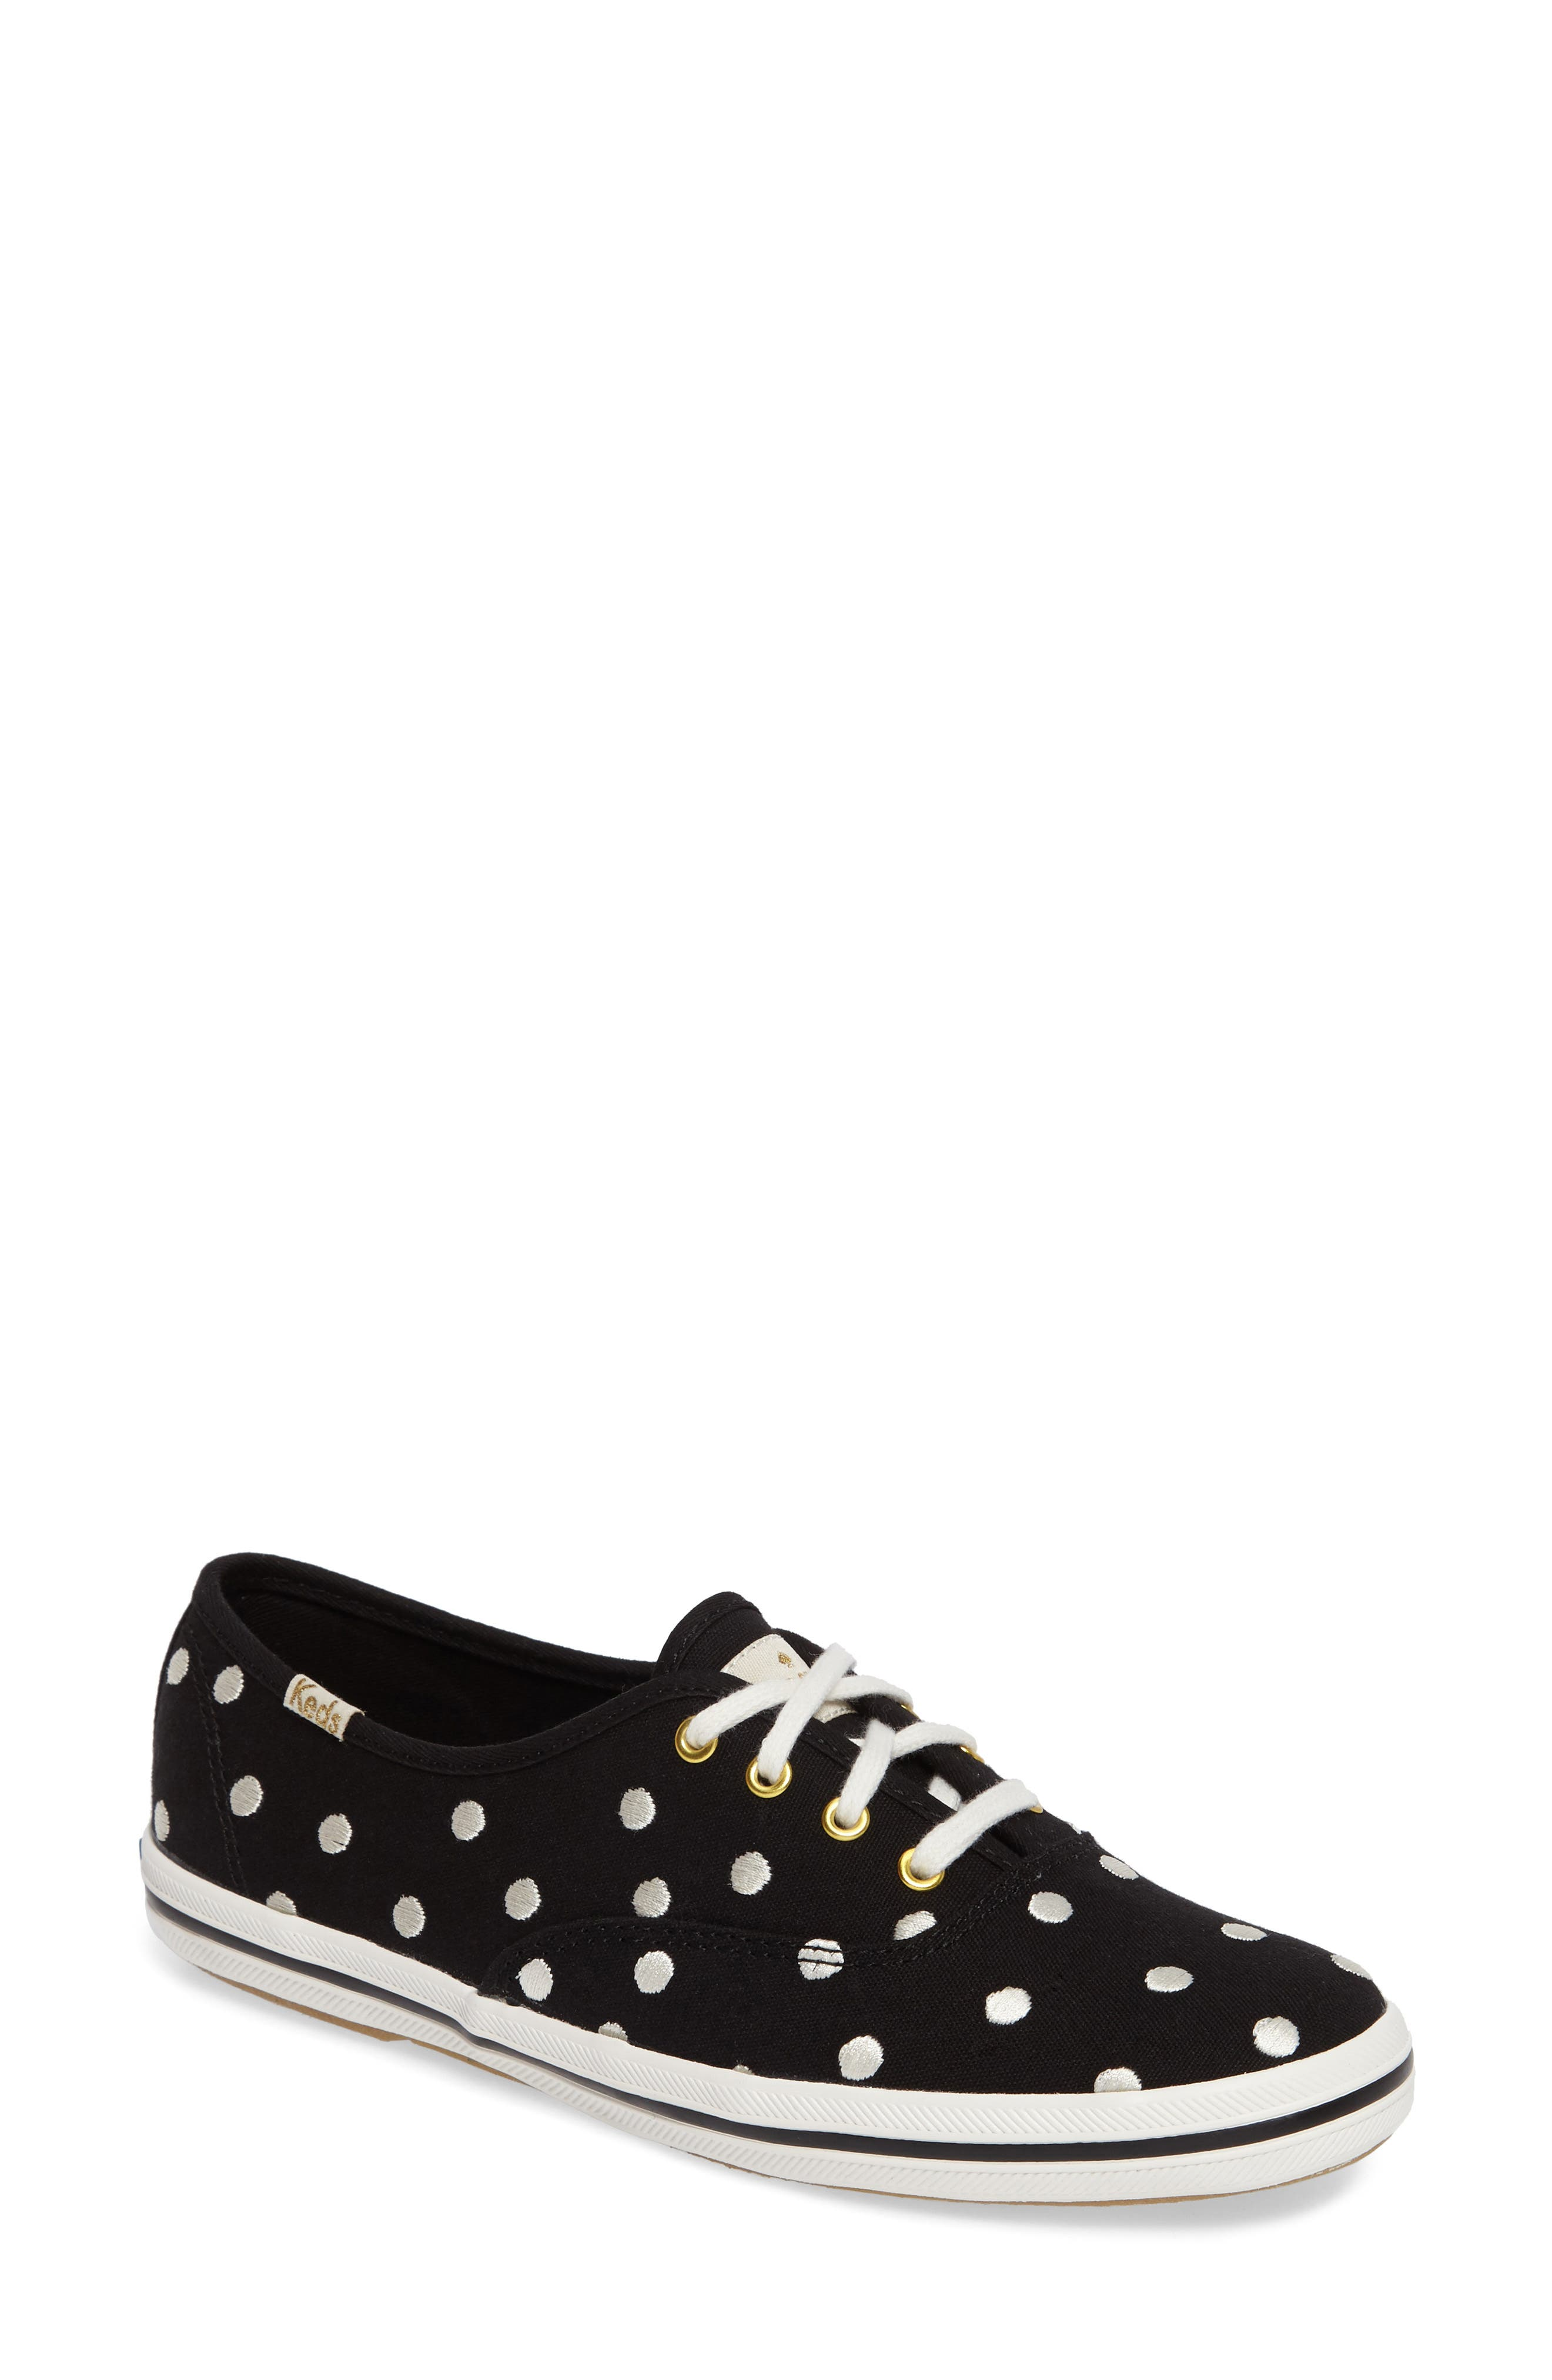 Keds<sup>®</sup> x kate spade new york champion sneaker,                             Main thumbnail 1, color,